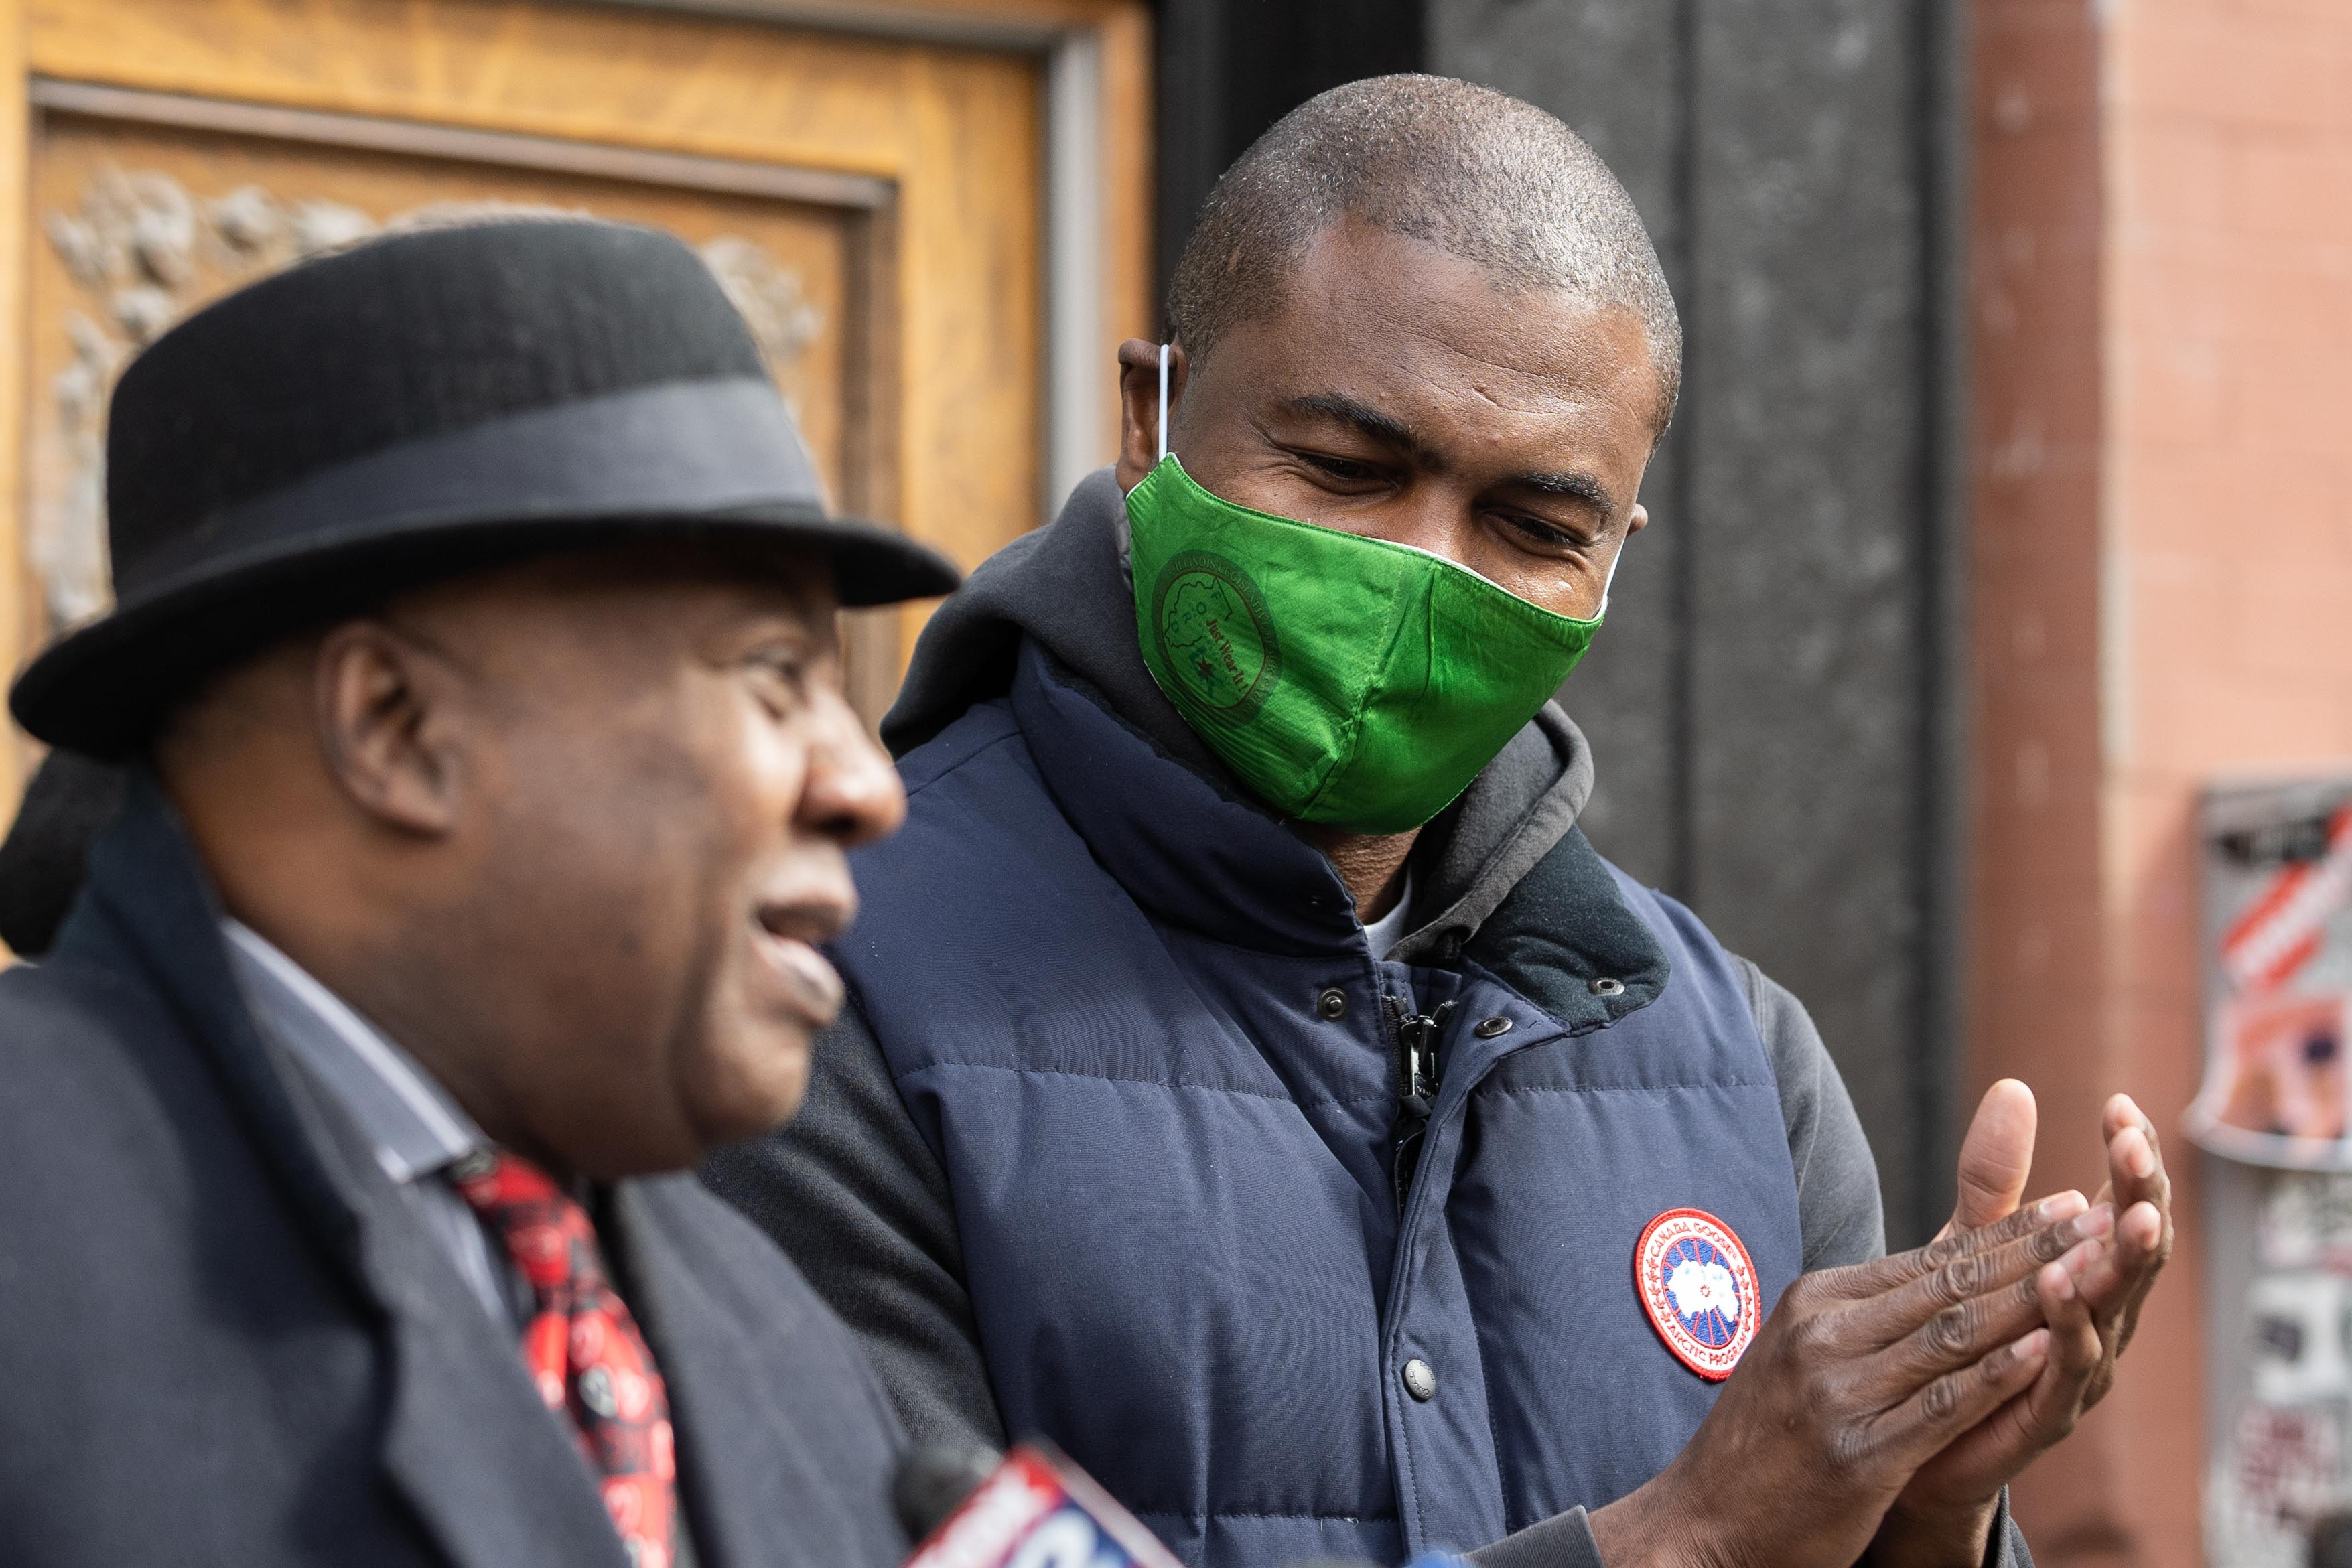 State Rep. La Shawn Ford claps as former state Sen. Ricky Hendon speaks during a press conference outside Nature's Care West Loop in the West Town neighborhood, where cannabis equity advocates announced the introduction of House Bill 327, Tuesday morning, March 16, 2021.